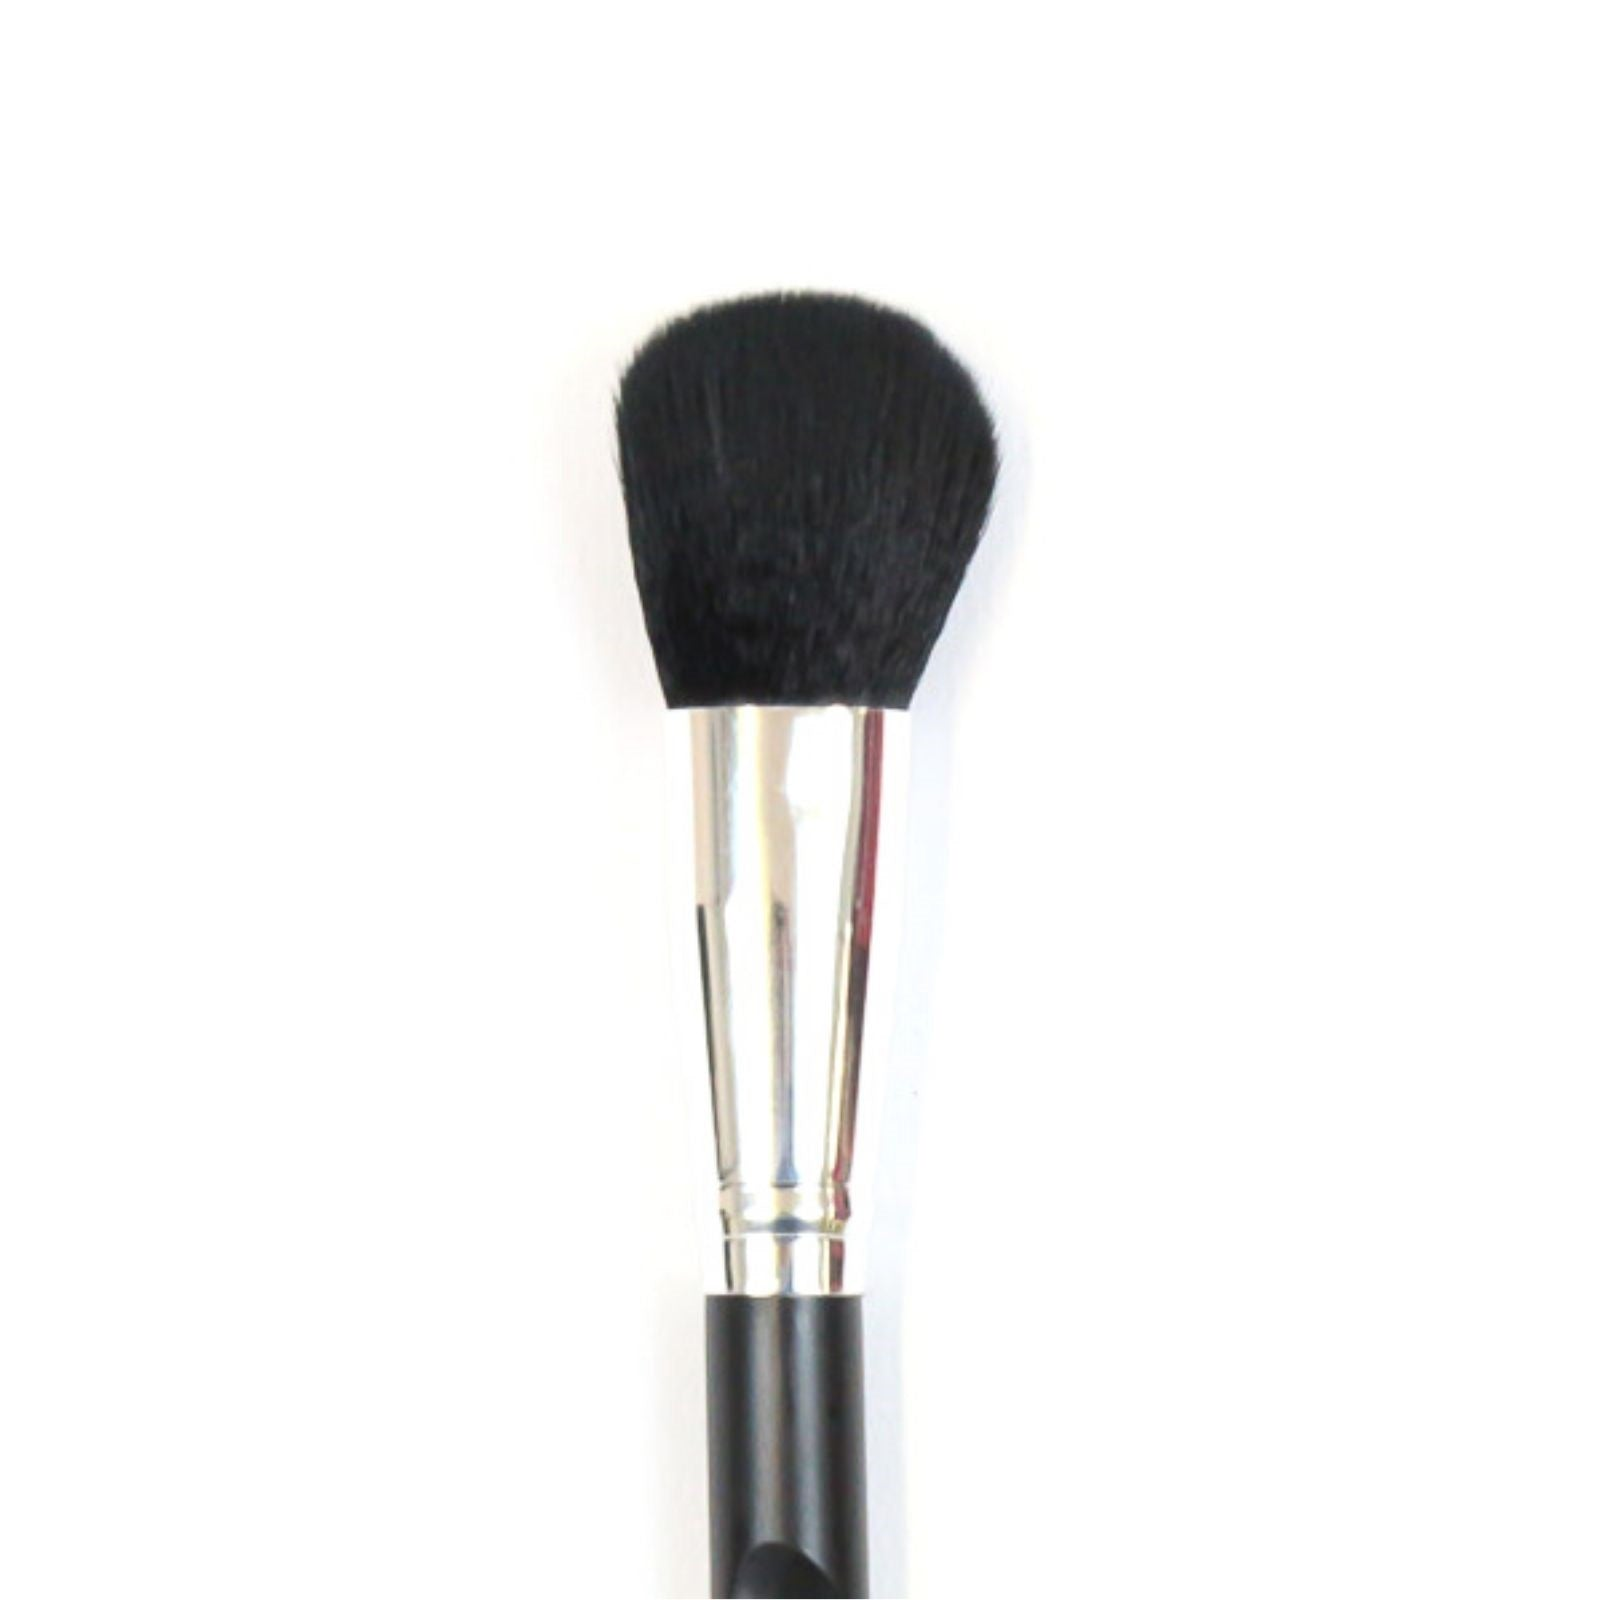 Crownbrush C141 Blusher Brush Head